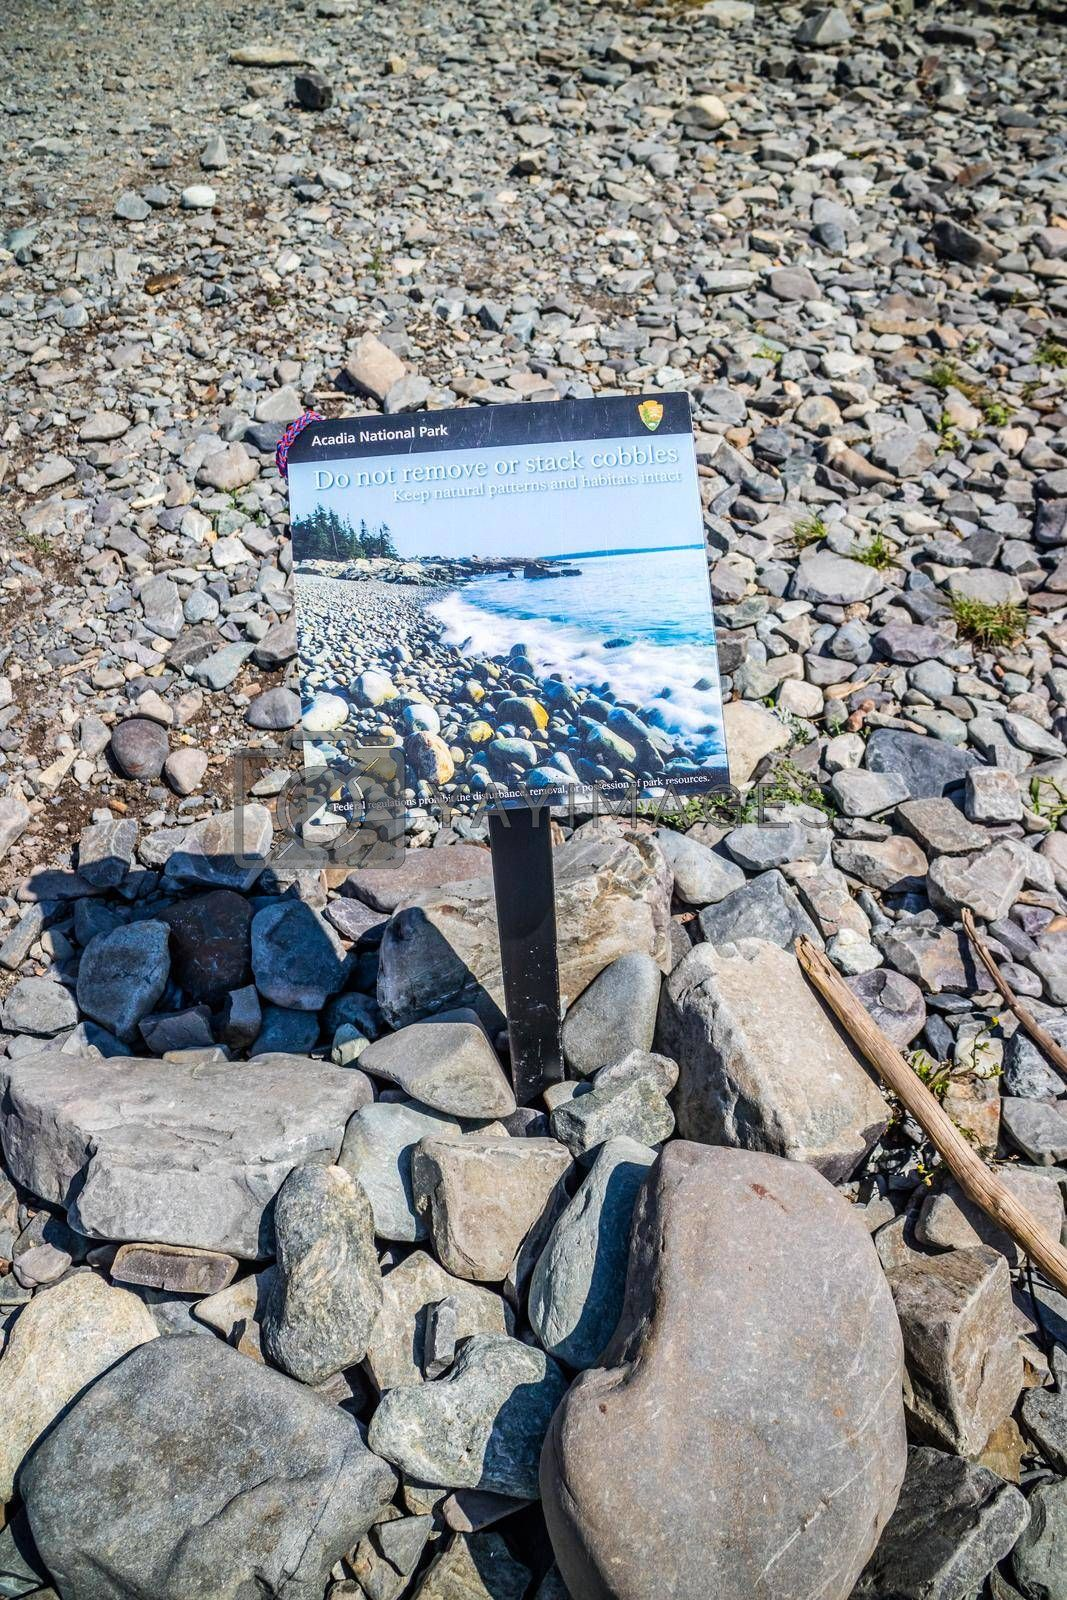 Royalty free image of Bar Harbor, ME, USA - August 19, 2018: A reminder about removal or stacking of stones placard by cherialguire